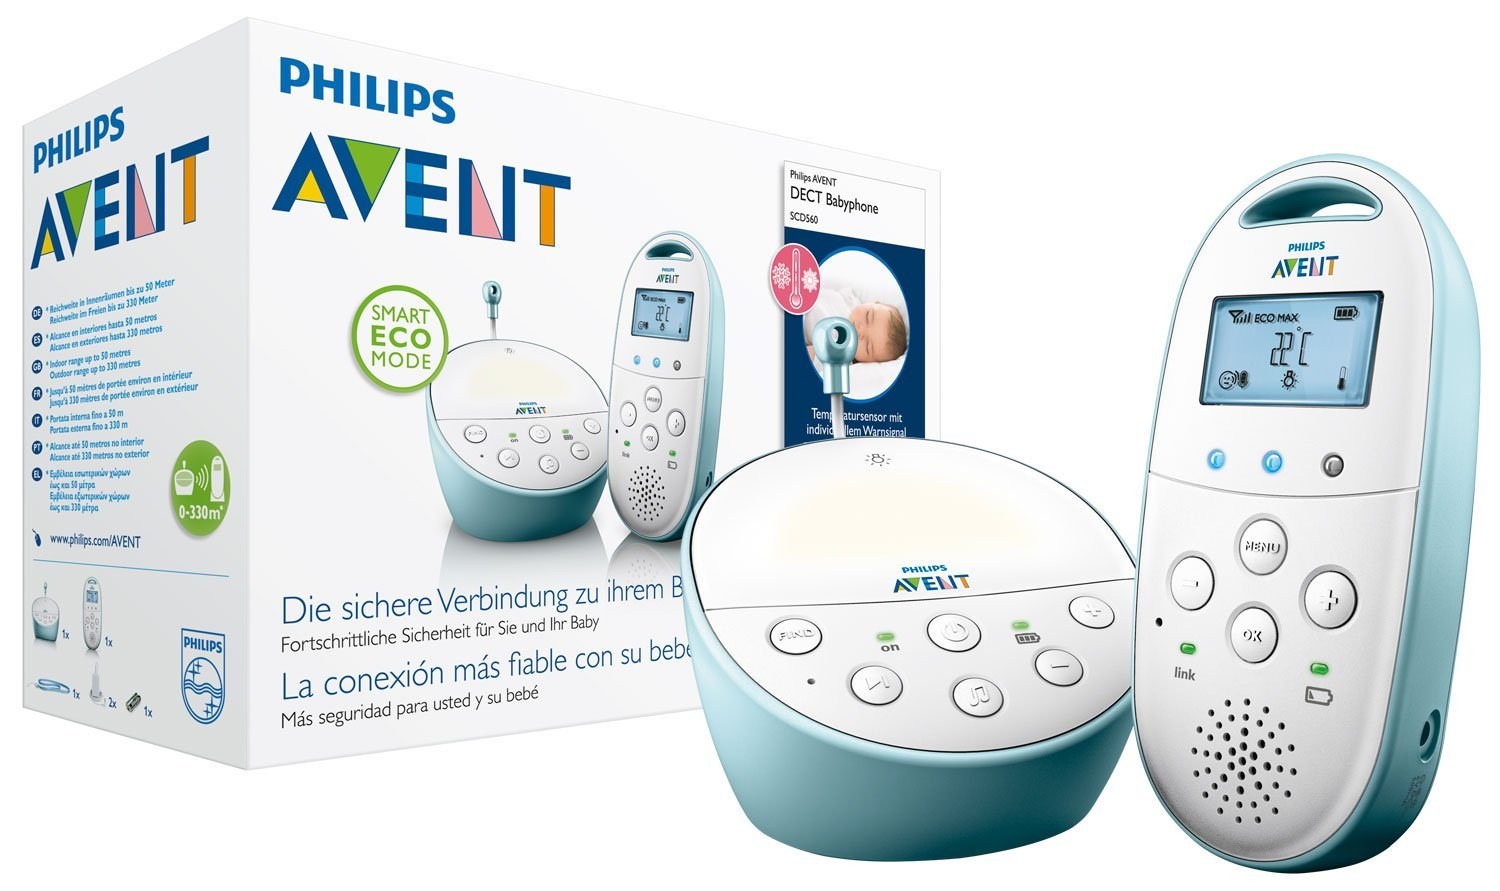 Philips Avent Babyphone DECT amazon